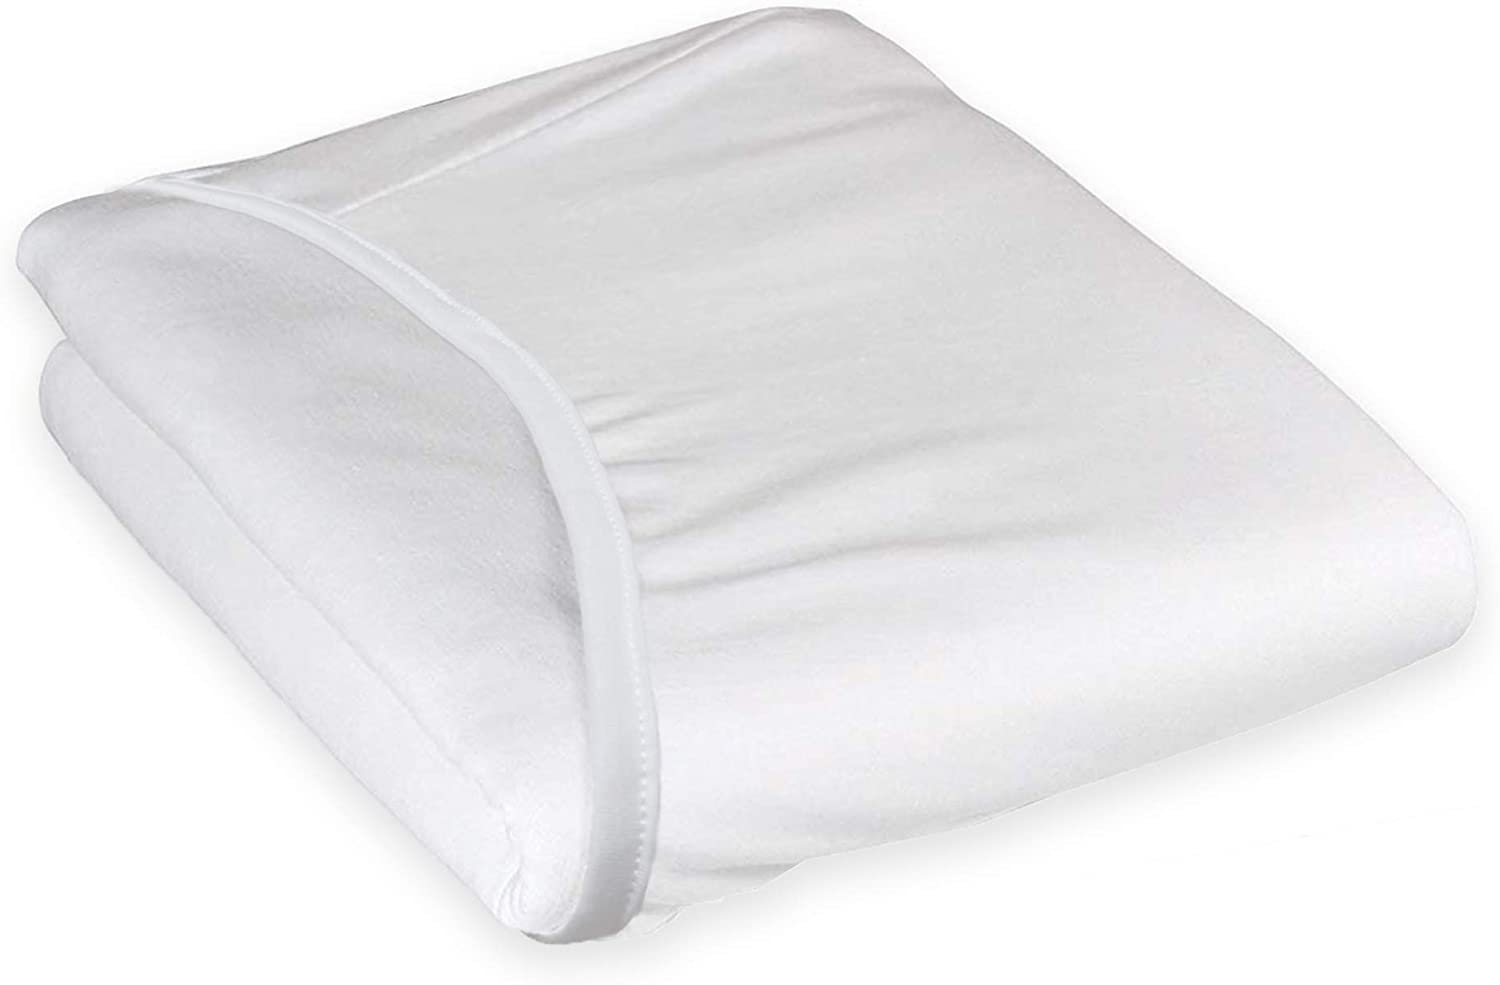 TL Care Health, Fitted Hospital Bed Sheet, 48% Cotton/52% Poly Blend, for Medical or Home Care, 84